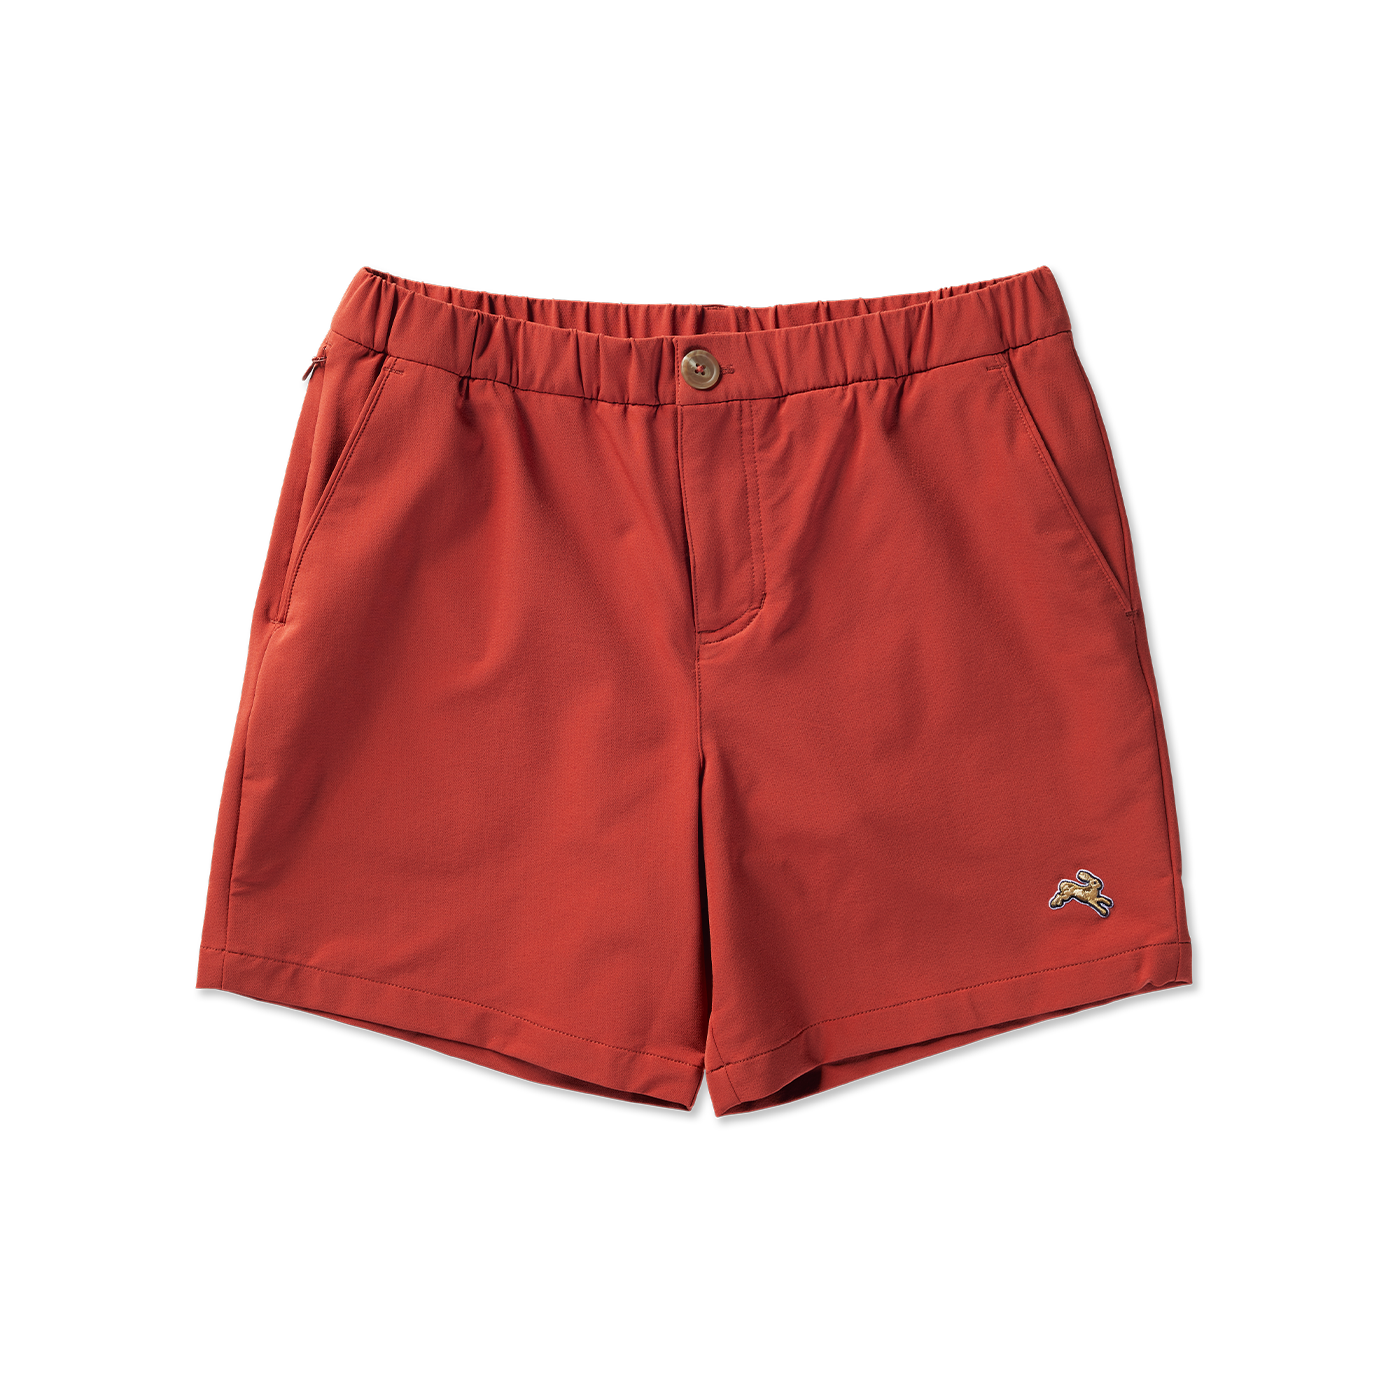 Tracksmith Falmouth Shorts